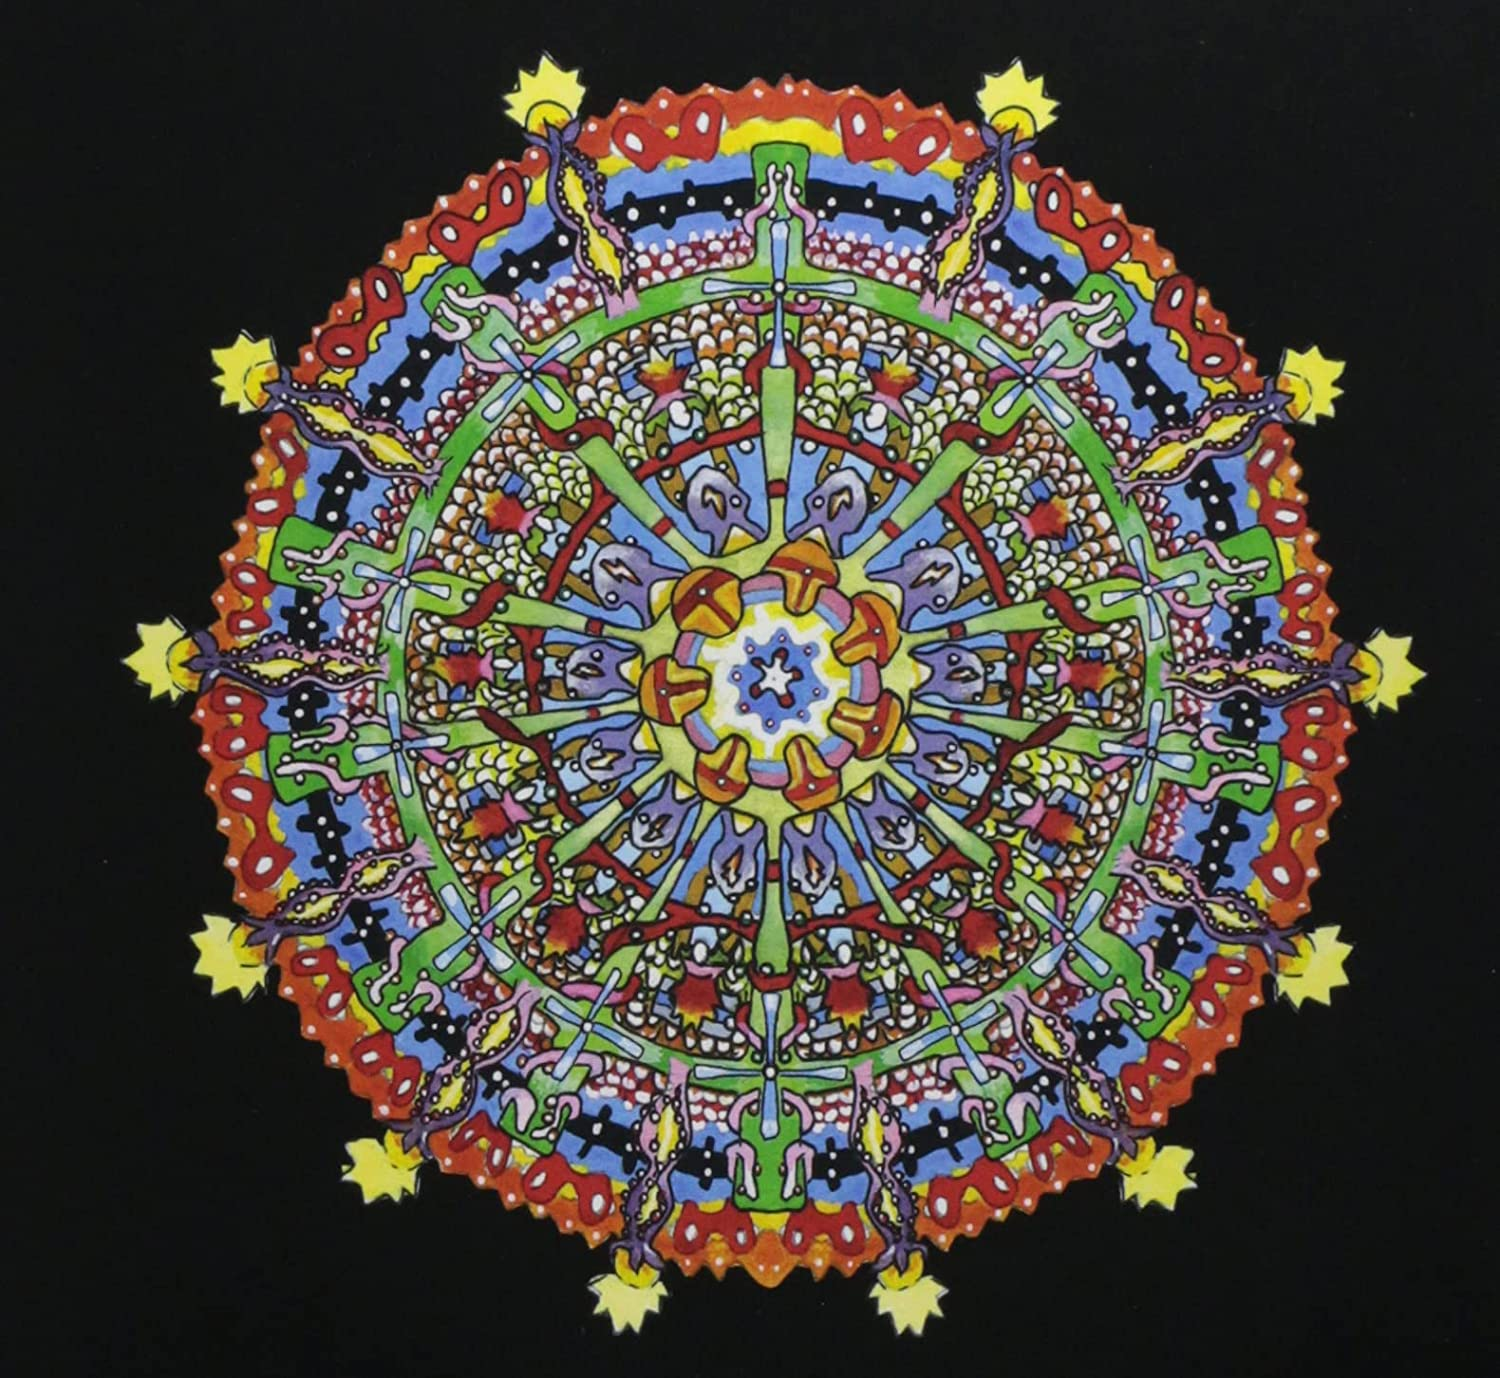 Of Montreal, Hissing Fauna, Are You The Destroyer?